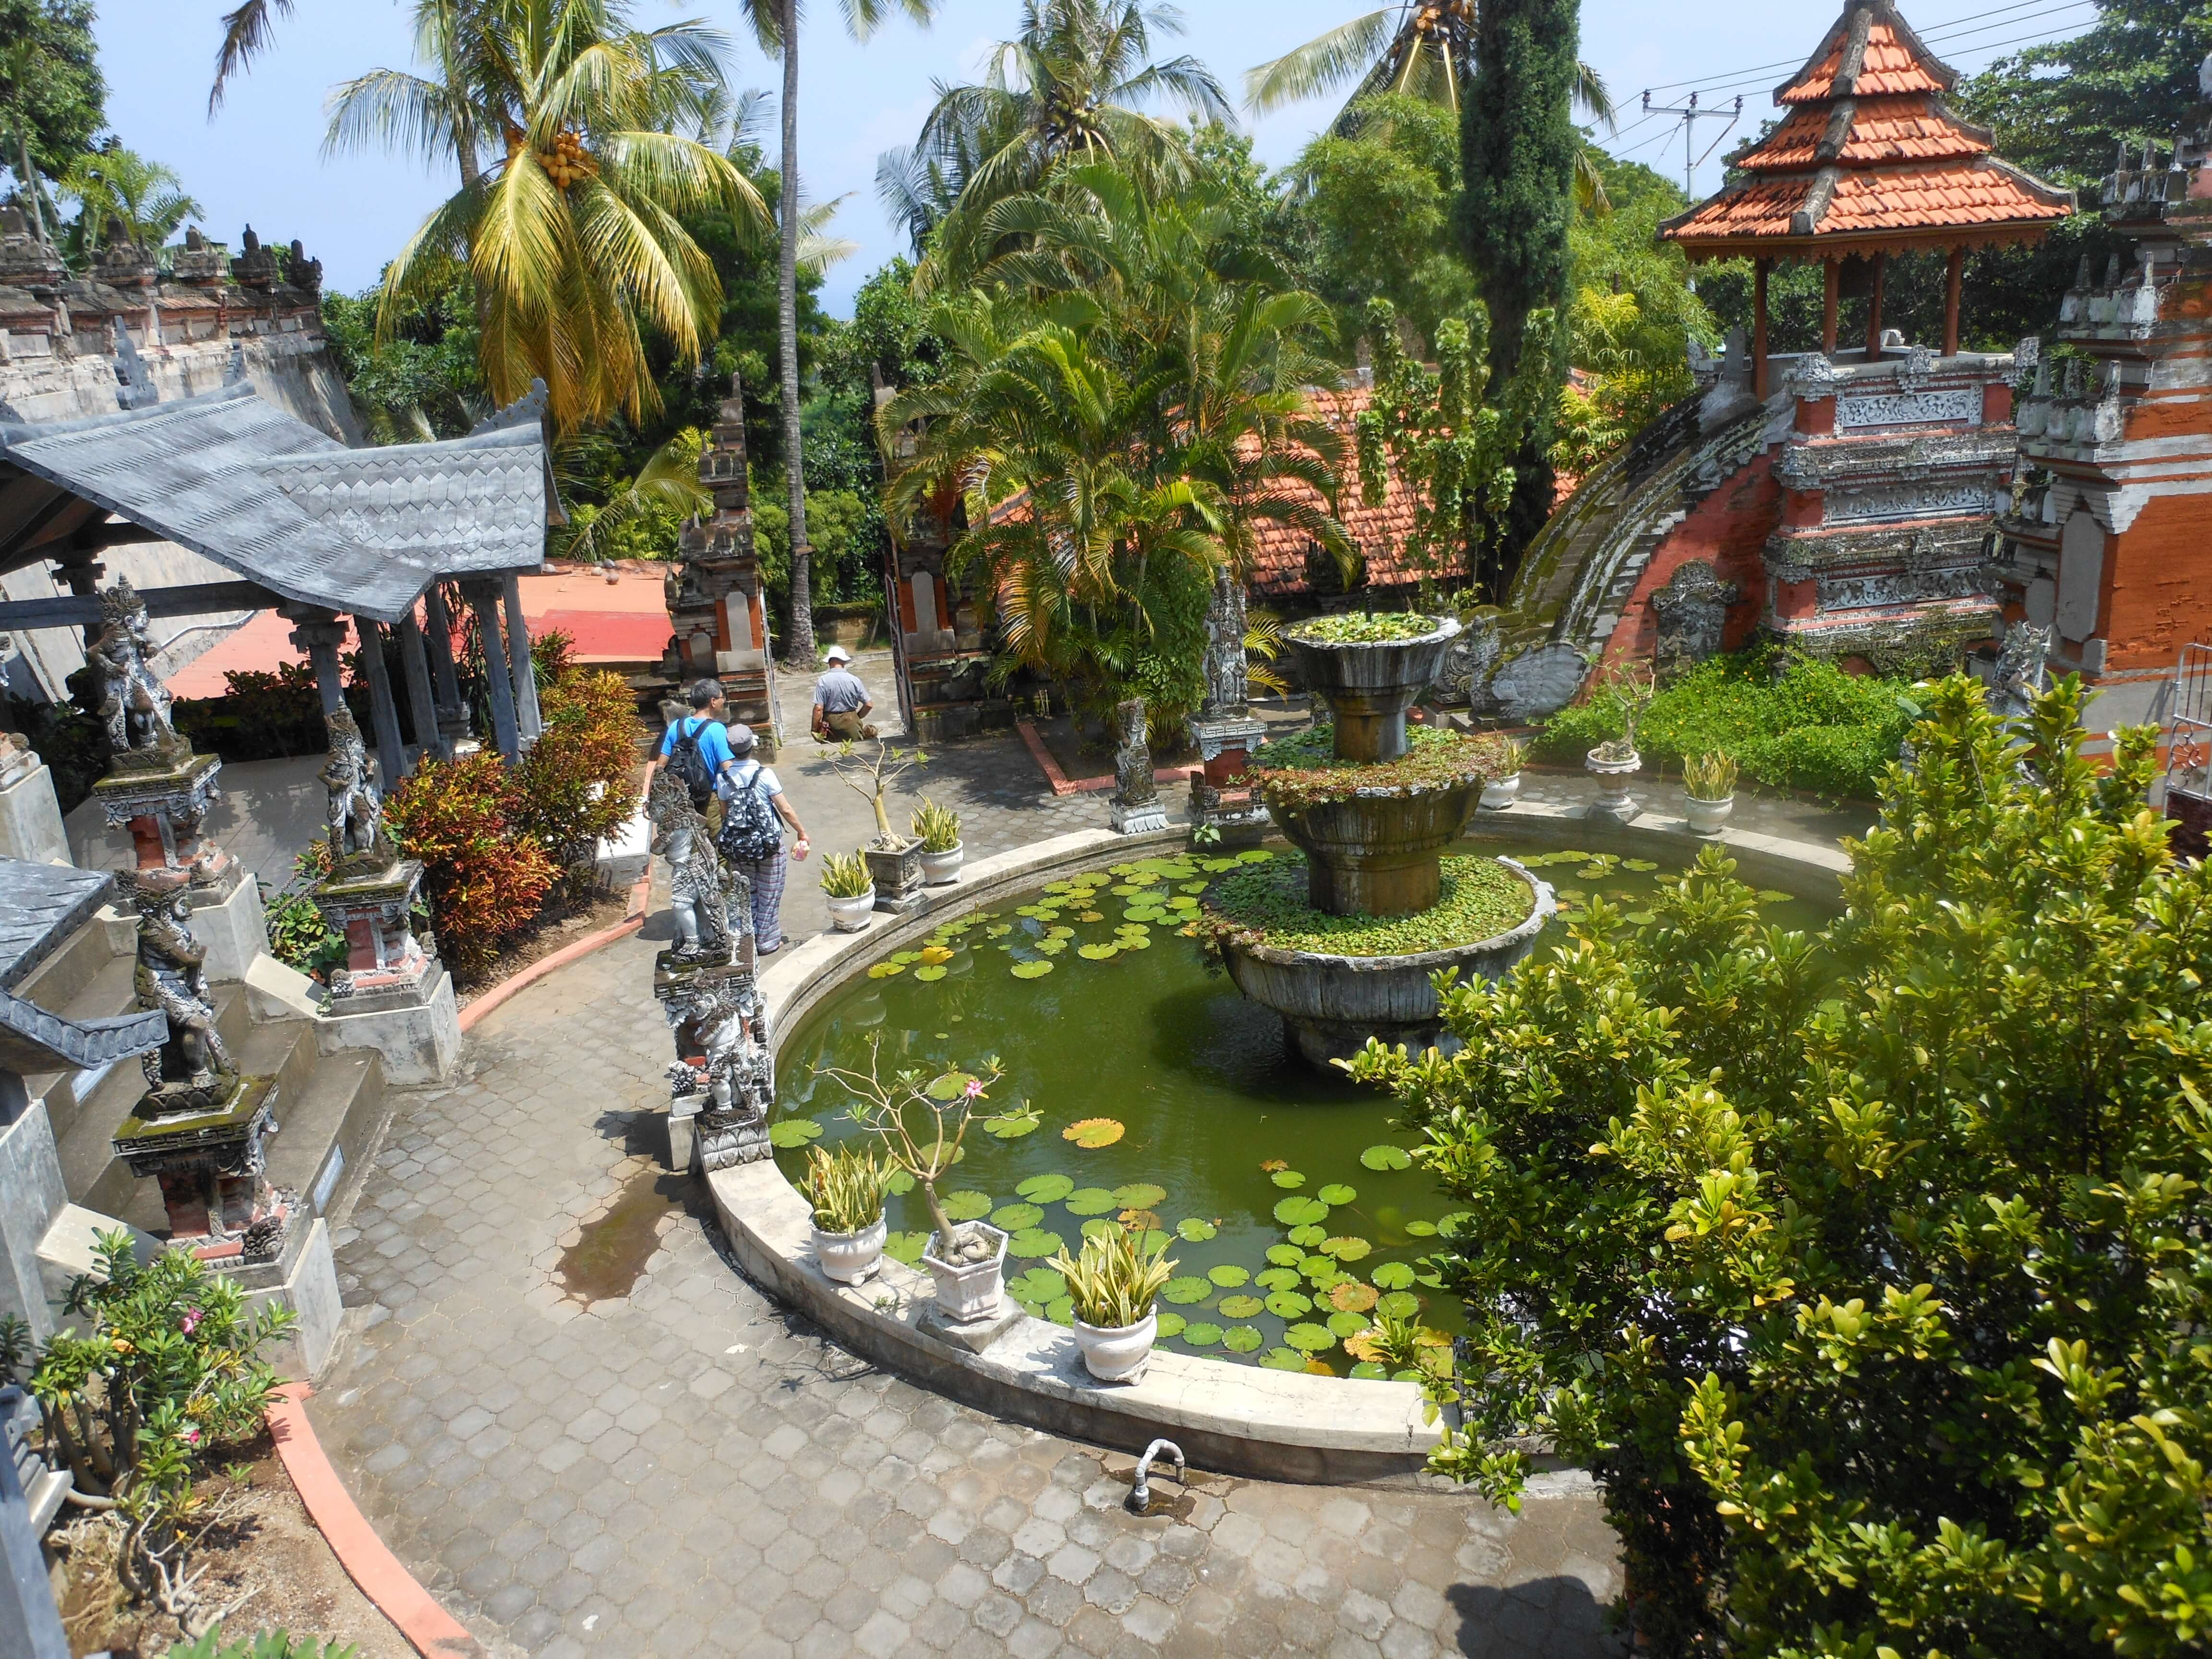 balinese temple, a highlight of southeast asia